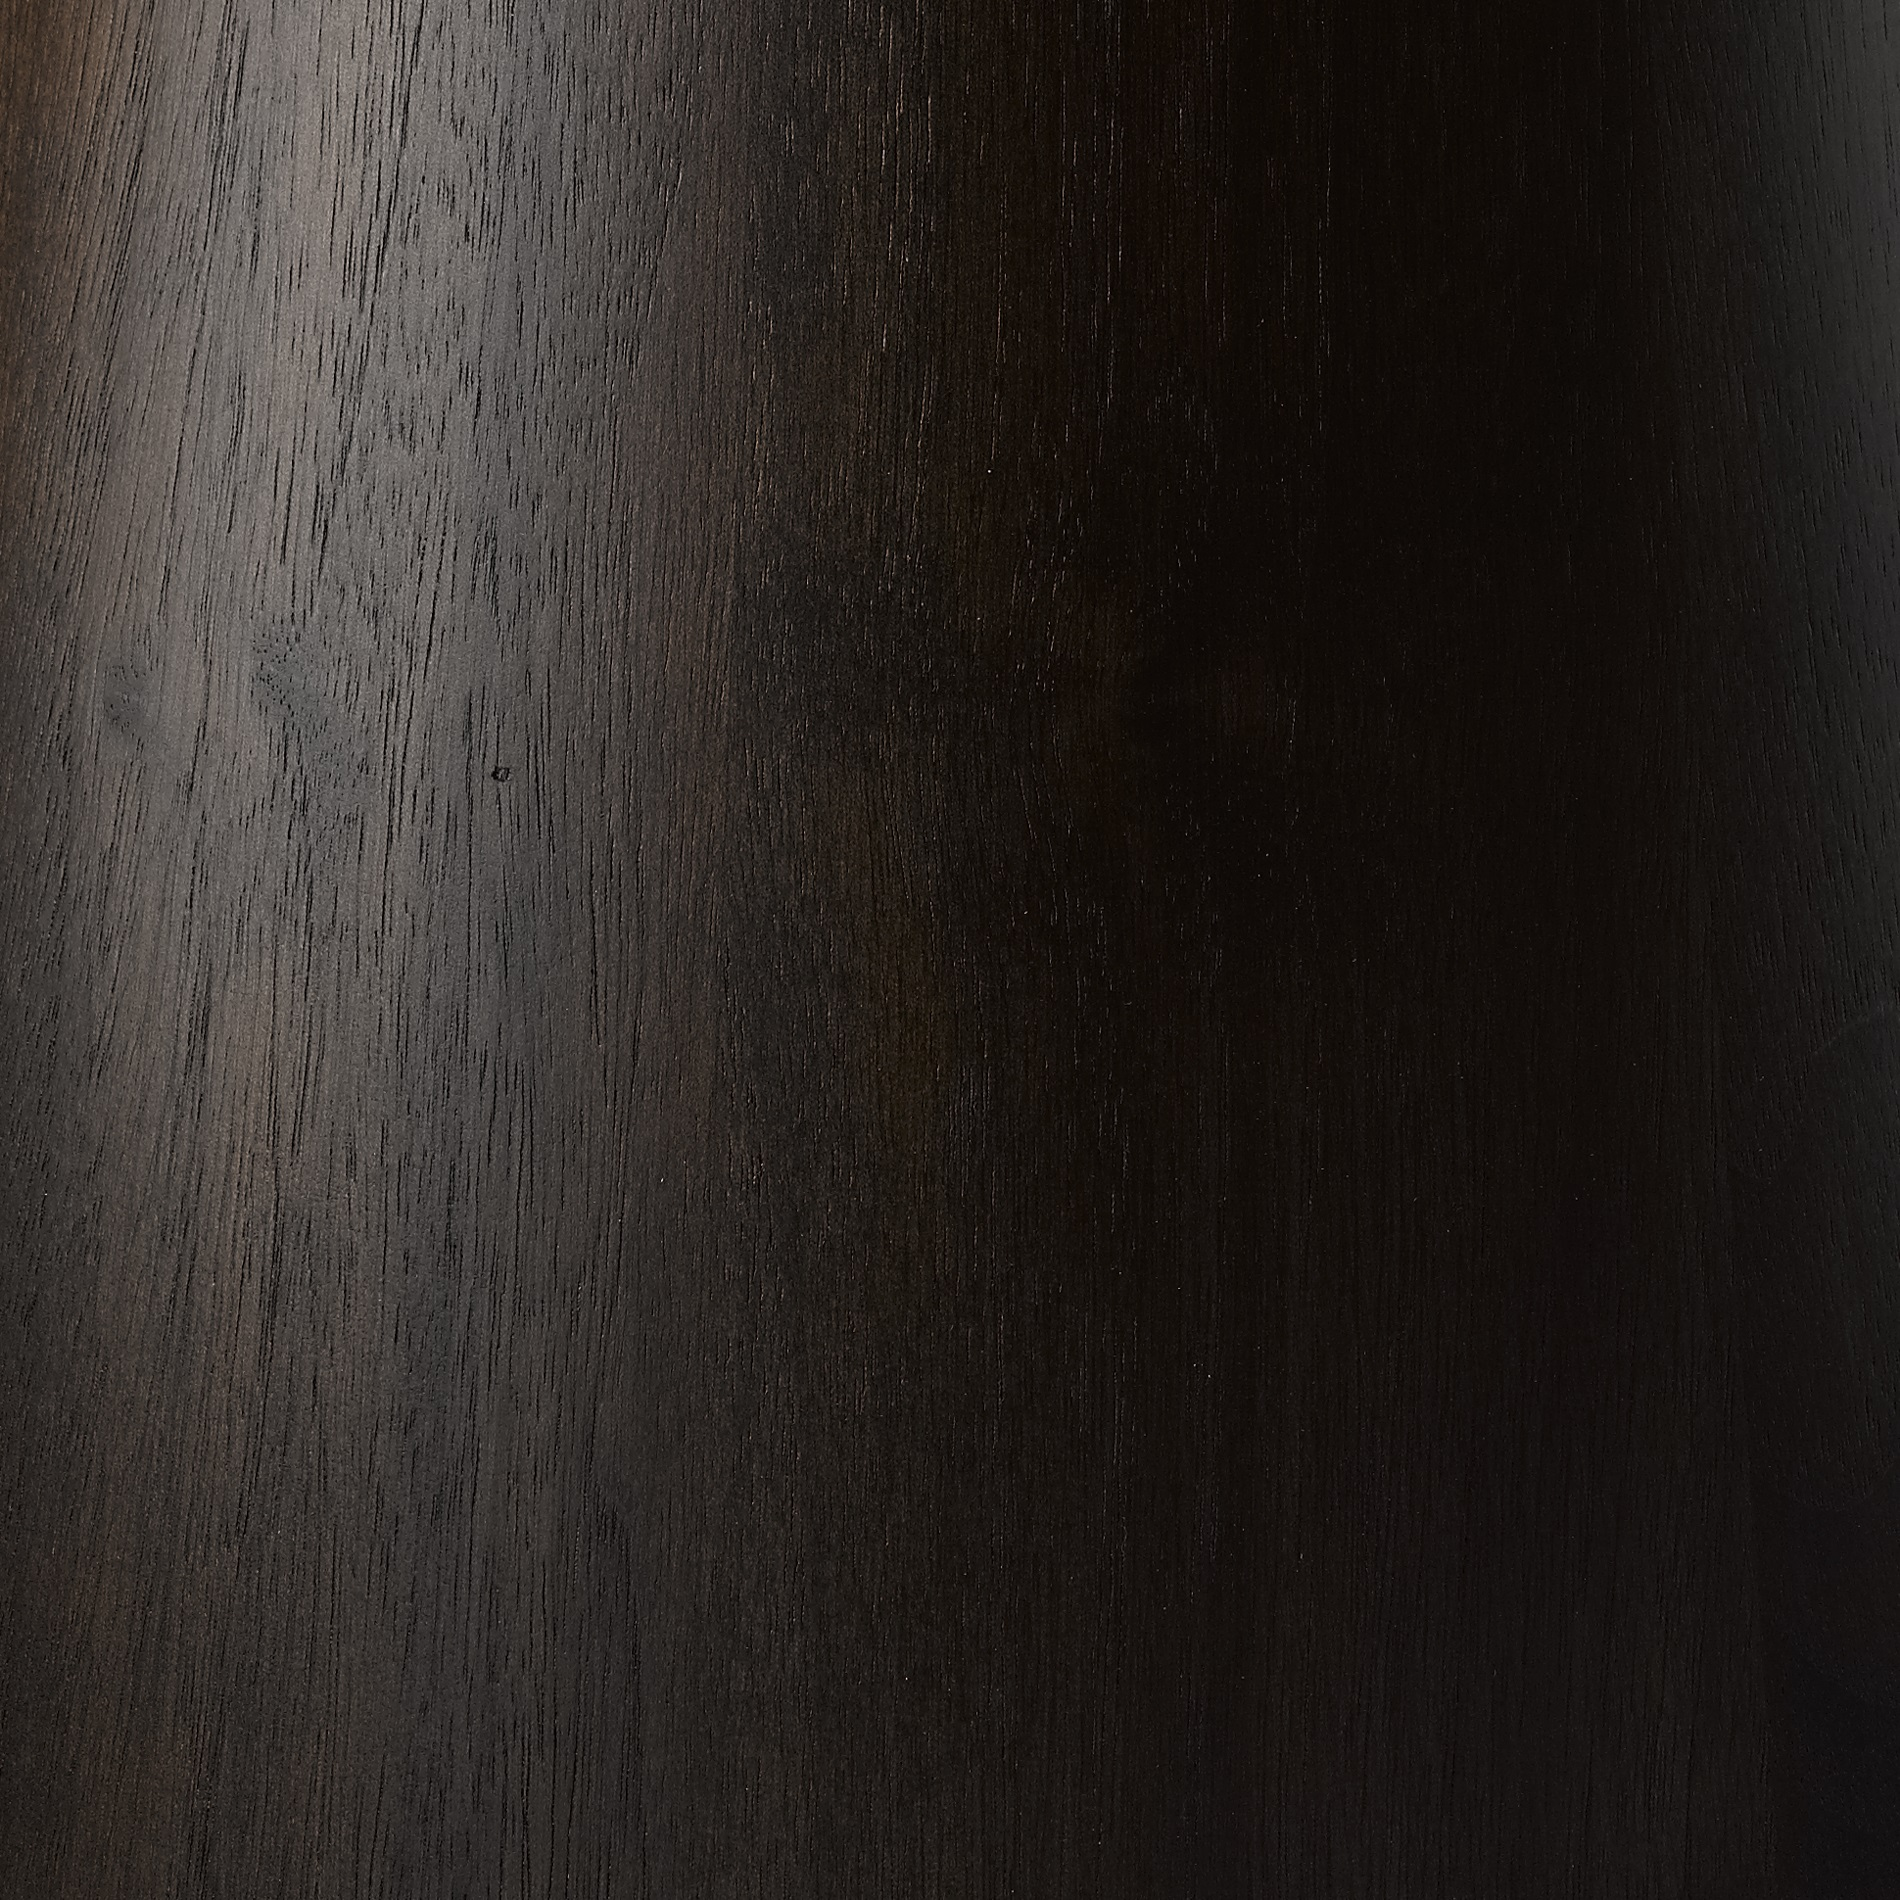 EBONISED WALNUT -  Stained to a rich cocoa with the natural colour tone and grain still visible. Finished with a clear lacquer to a 10% sheen level.